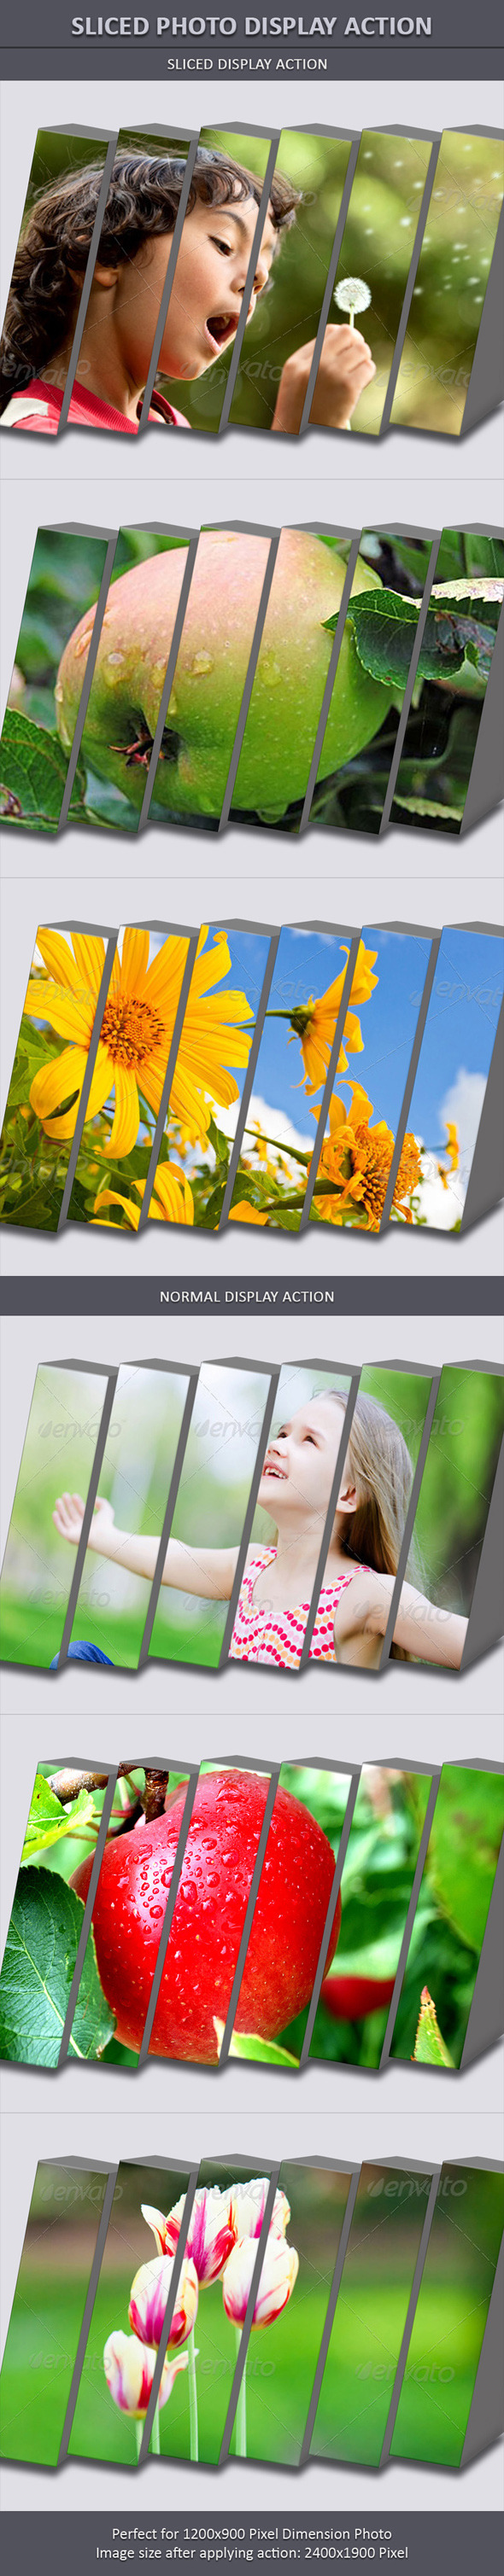 Sliced Photo Display Action - Photo Effects Actions